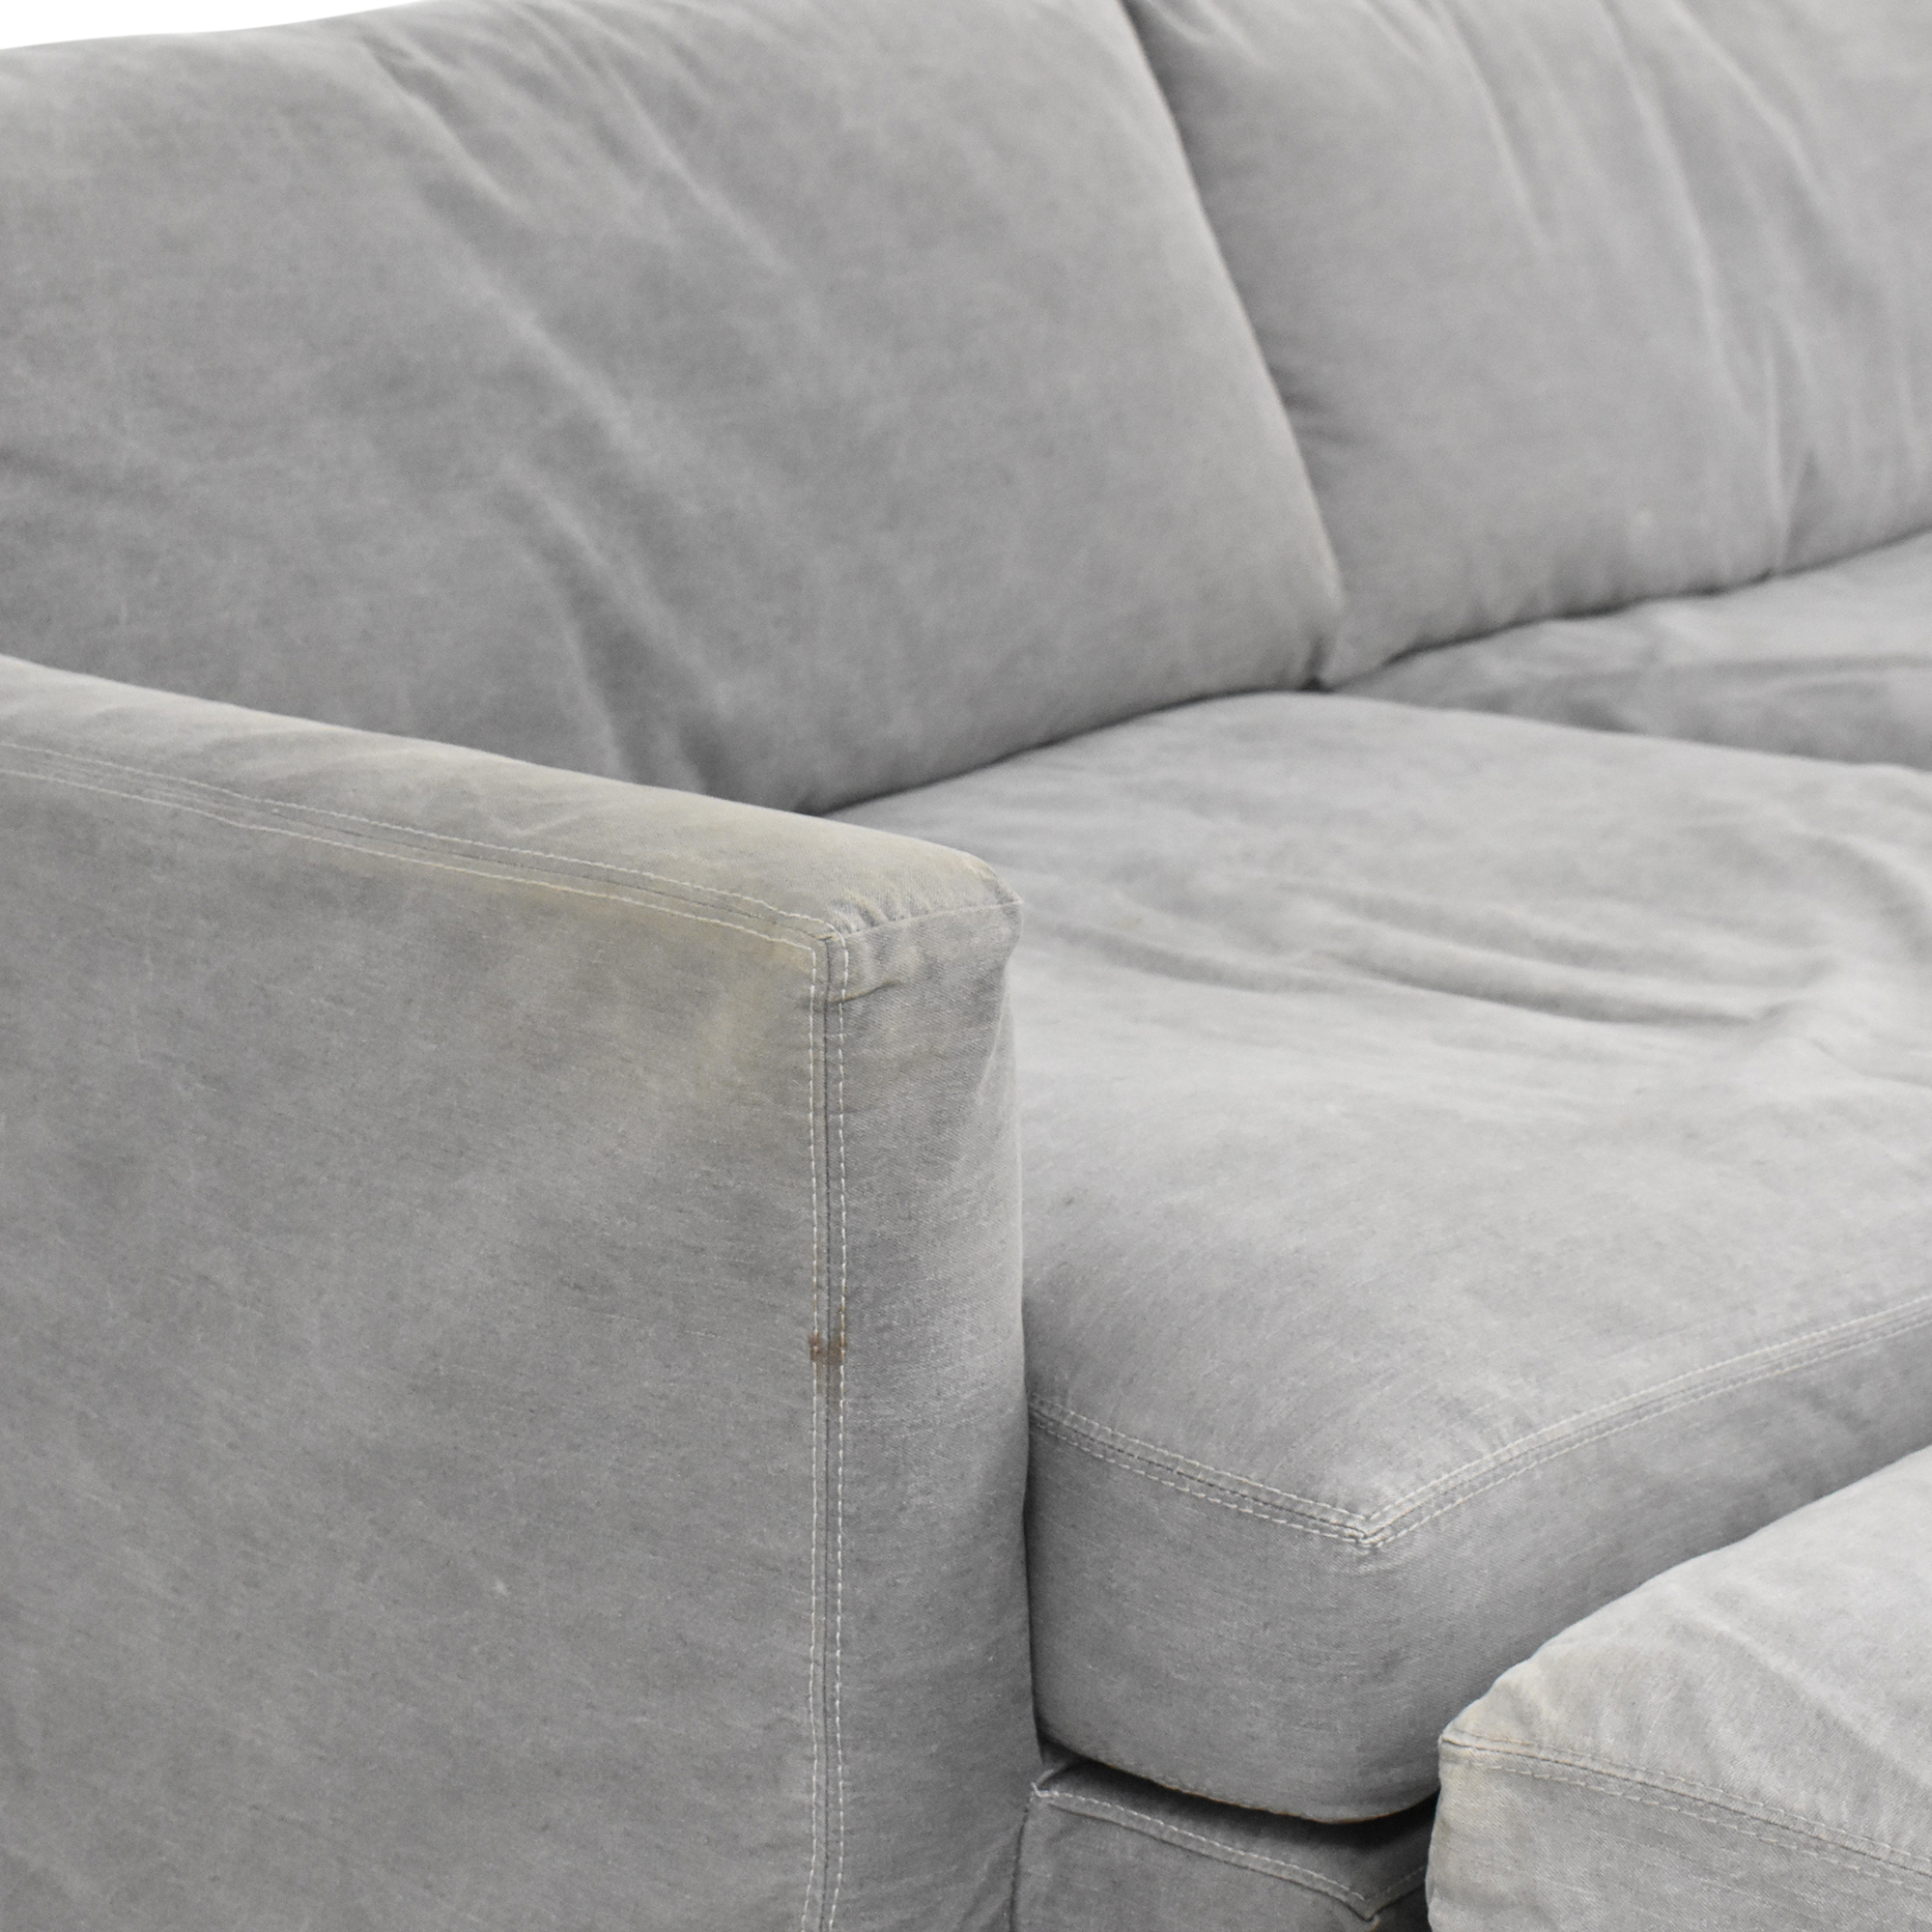 buy Crate & Barrel Lounge II Sofa with Two Ottomans on Casters Crate & Barrel Sofas